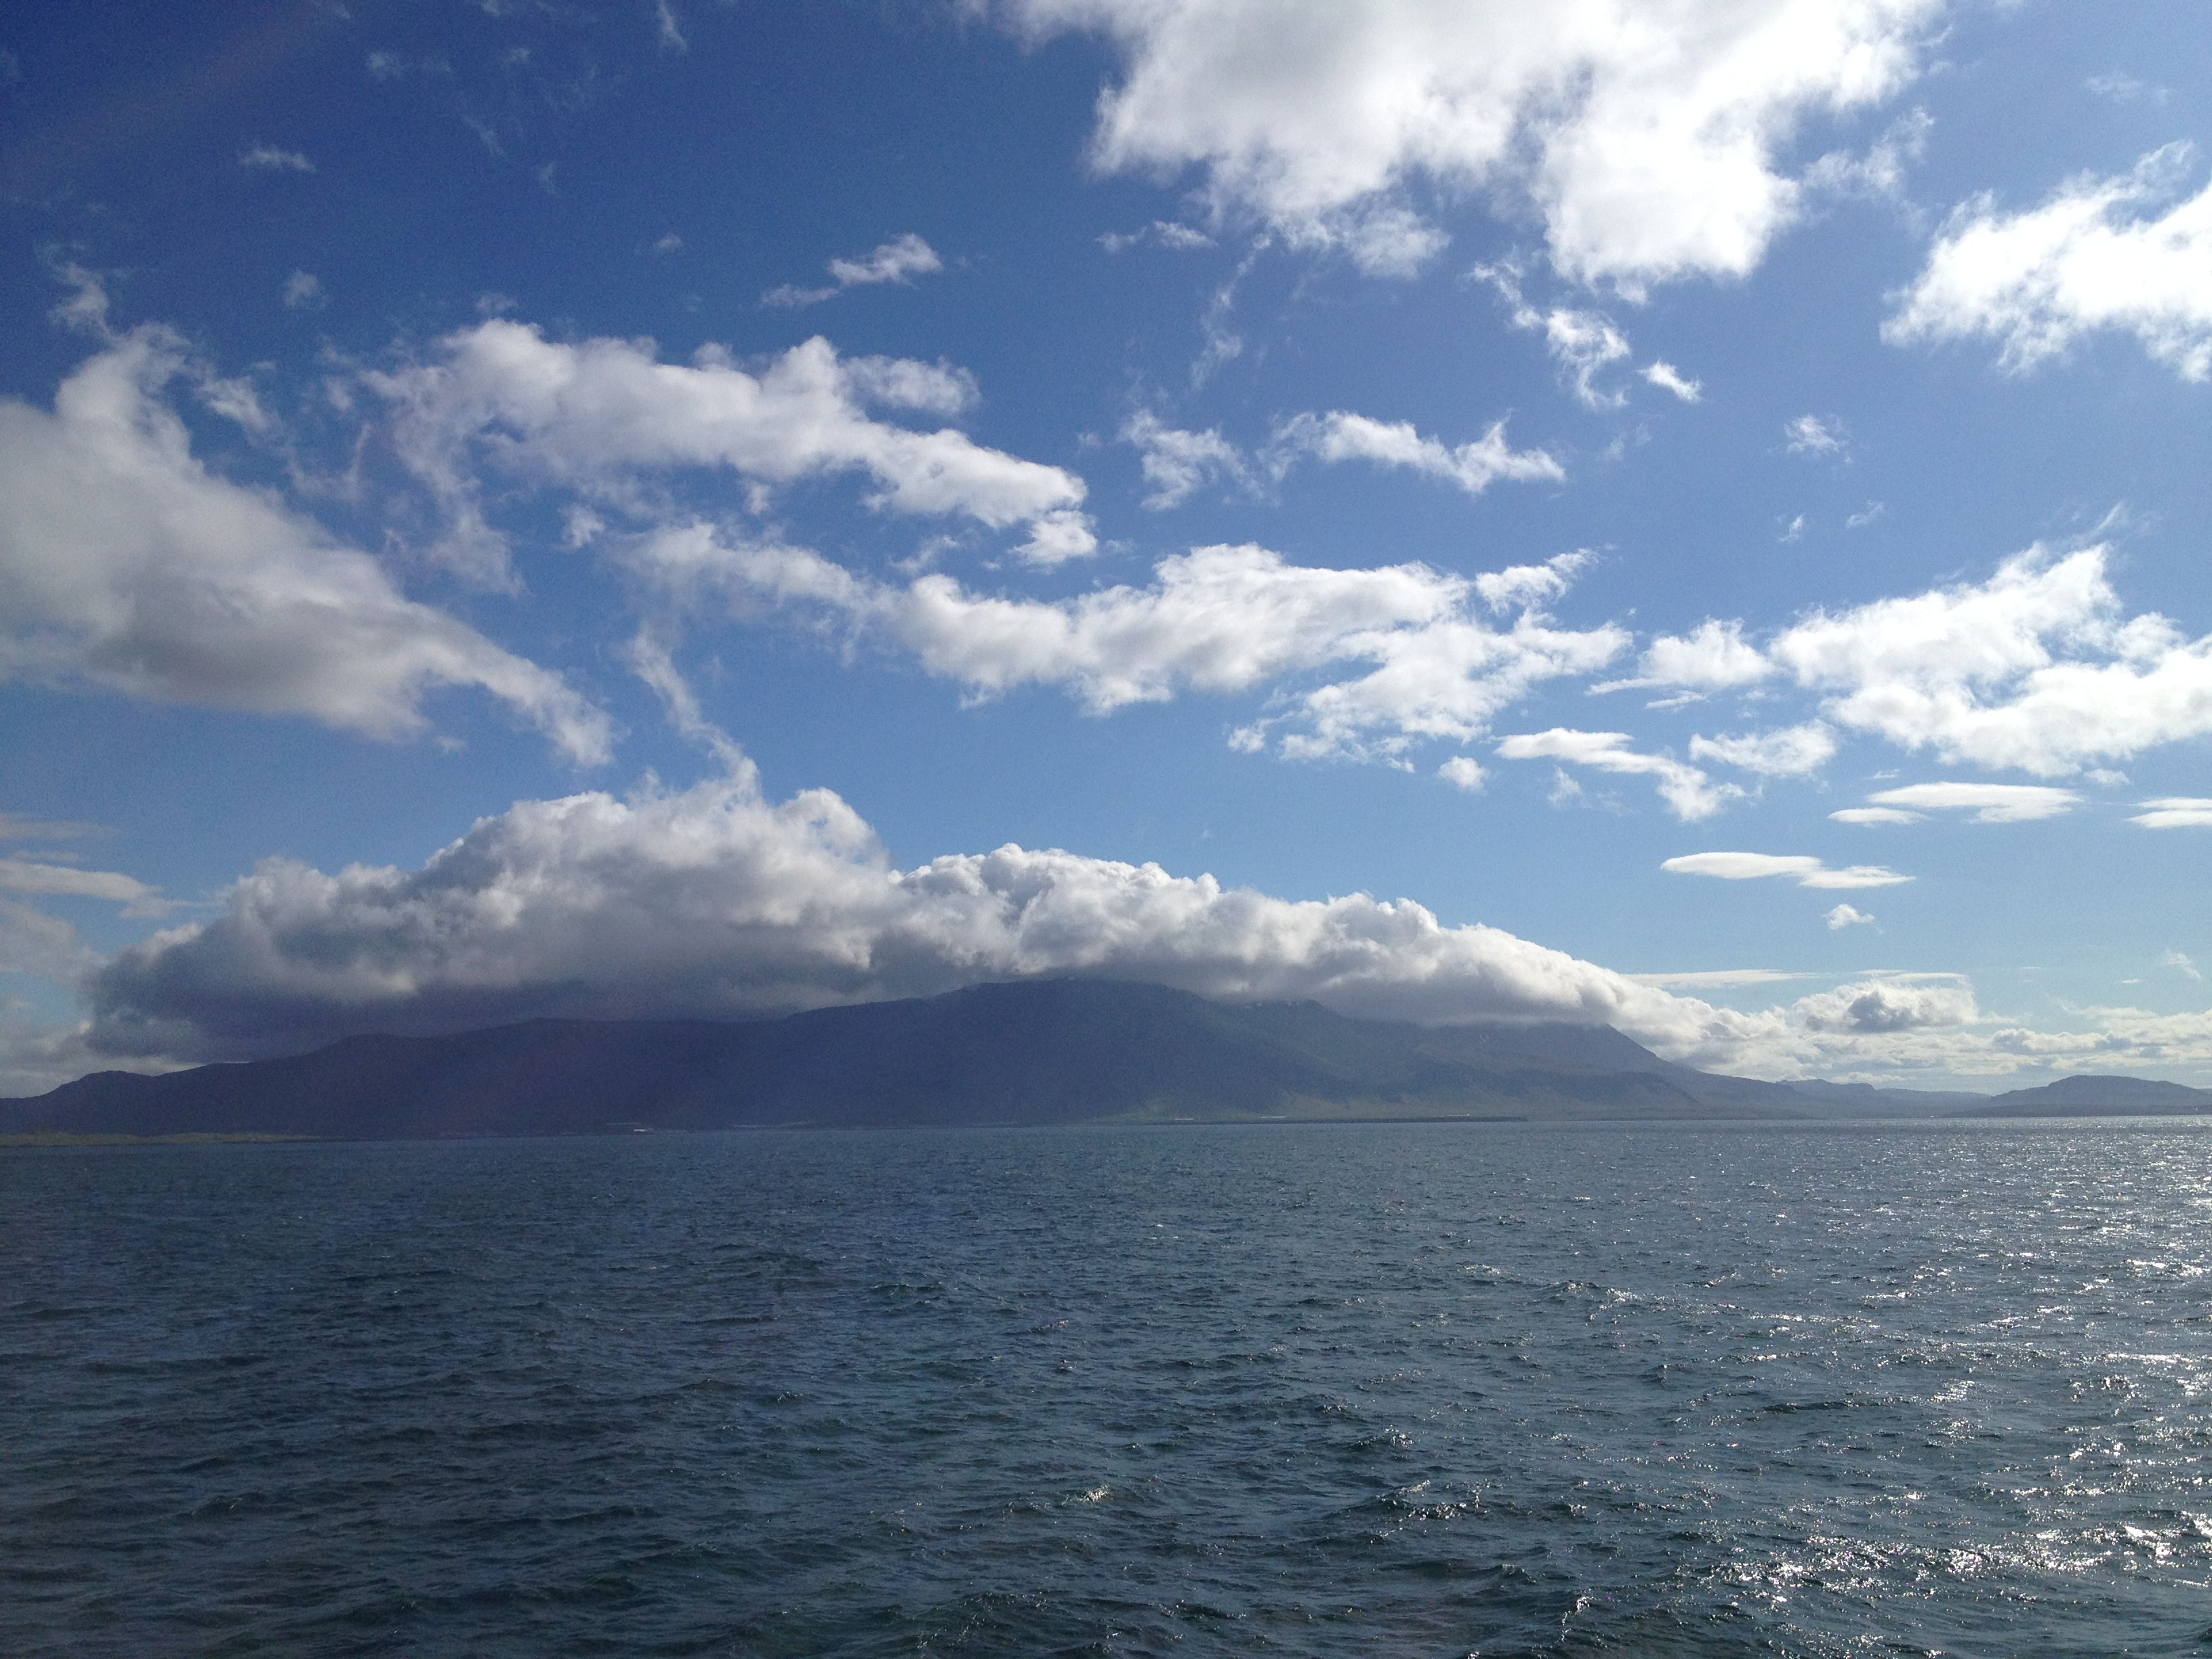 Clouds over the mountains leaving Reykjavik harbor